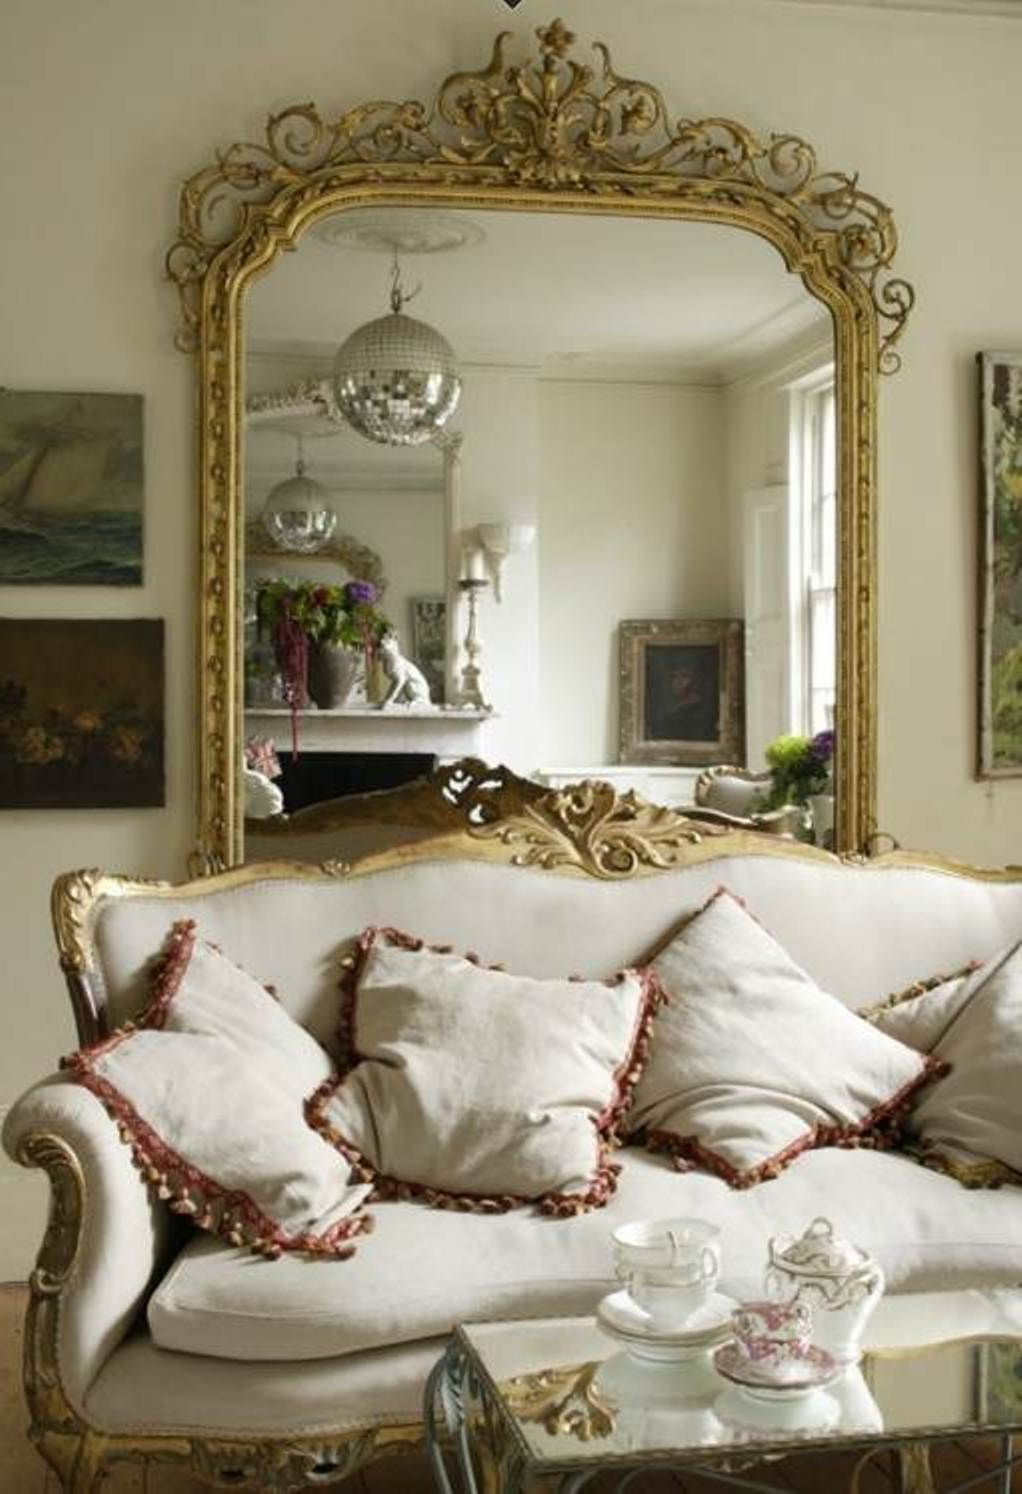 Traditional Gold Framed Wall Mirror